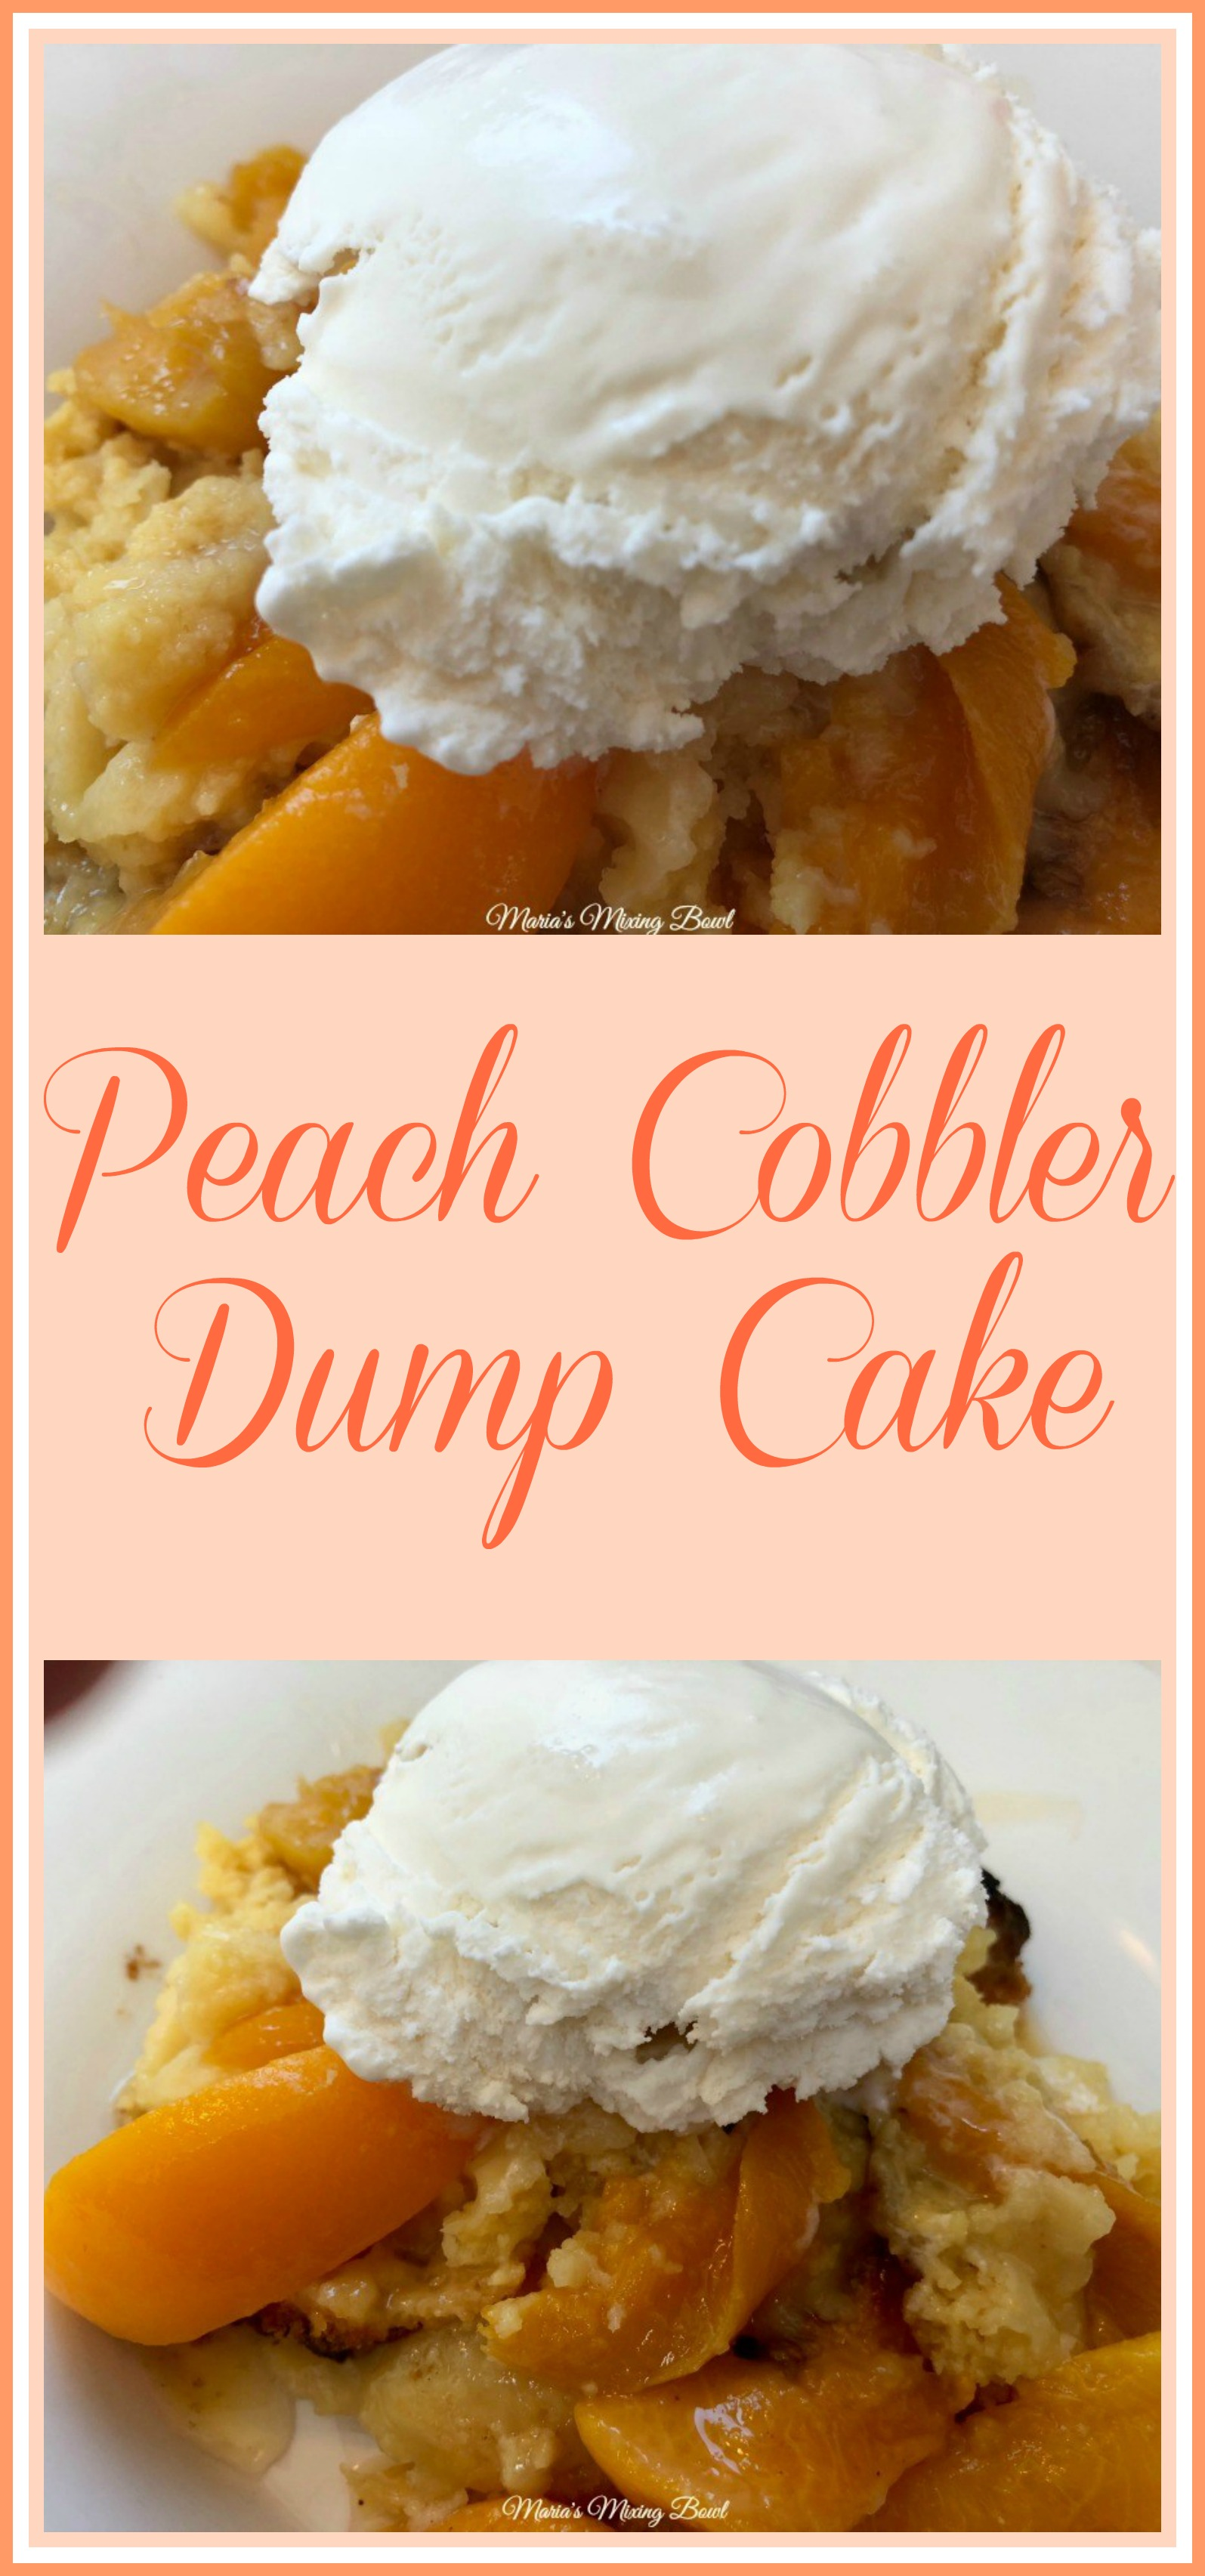 Peach Cobbler Dump Cake - Just a few ingredients and you will have yourself a delicious dessert that everybody will love. Perfect for potlucks and family gatherings!